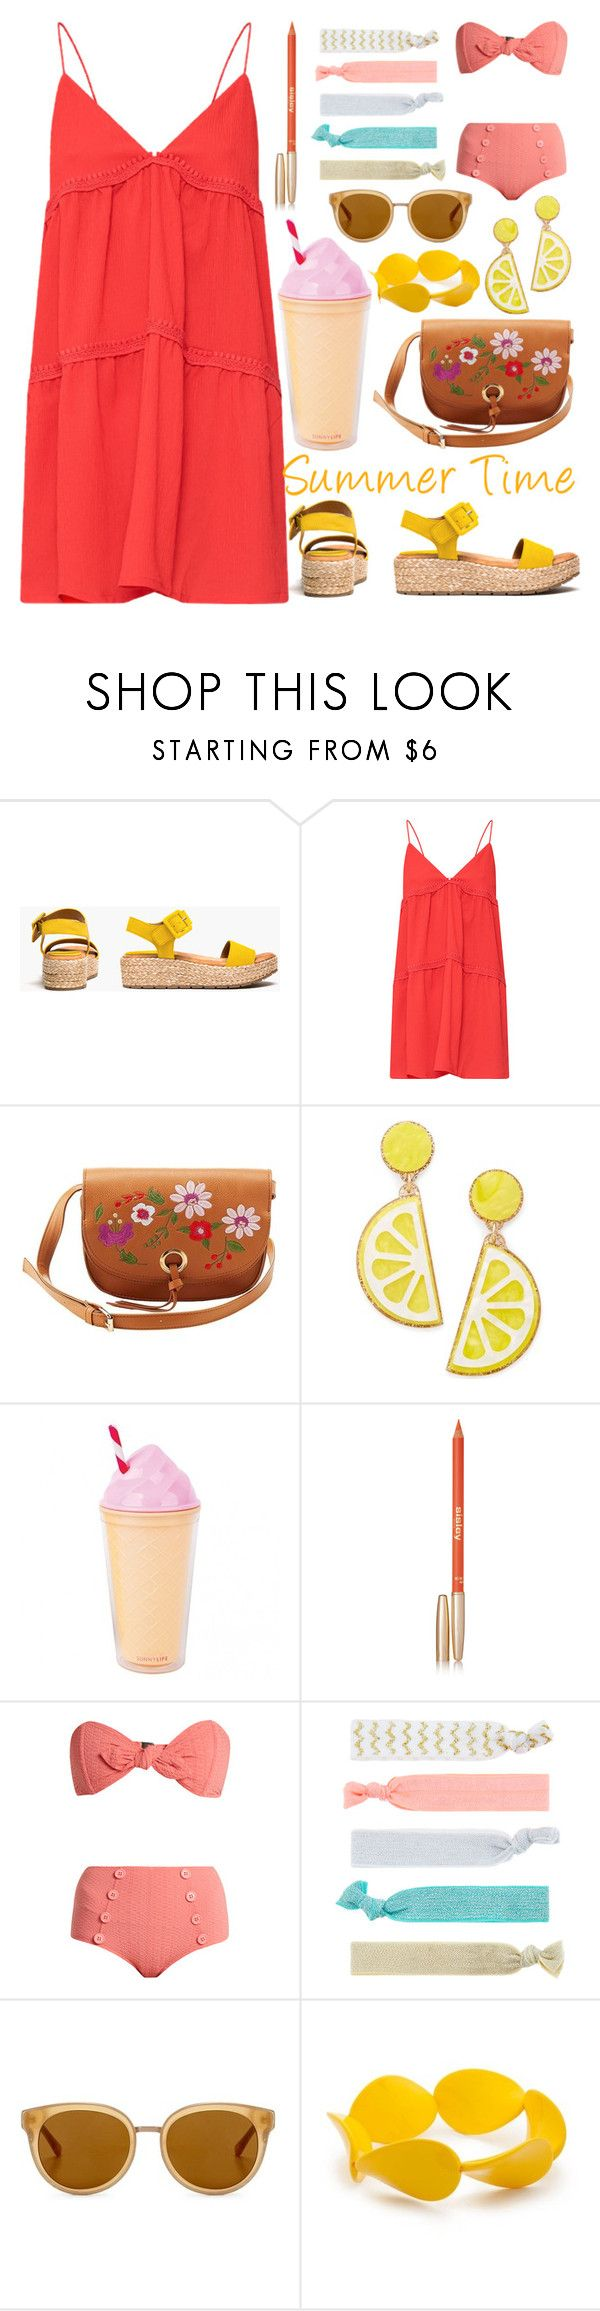 """""""Summer Time"""" by ayiarundhati ❤ liked on Polyvore featuring Kenneth Cole Reaction, Charlotte Russe, Celebrate Shop, Sisley, Lisa Marie Fernandez, Accessorize, Draper James and Kim Rogers"""